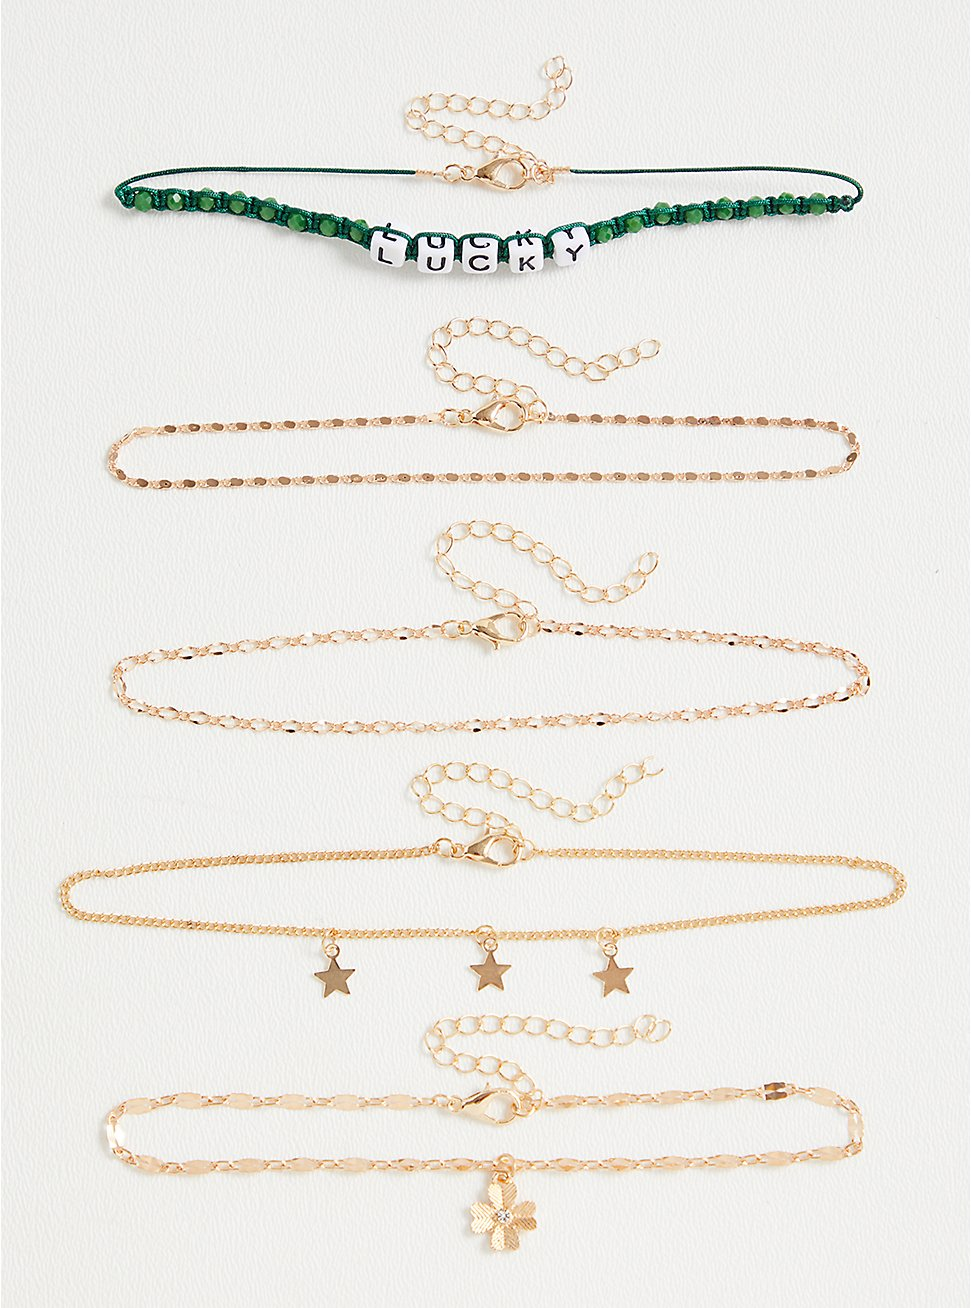 Green Lucky & Charm Anklet Set - Set of 5, , hi-res